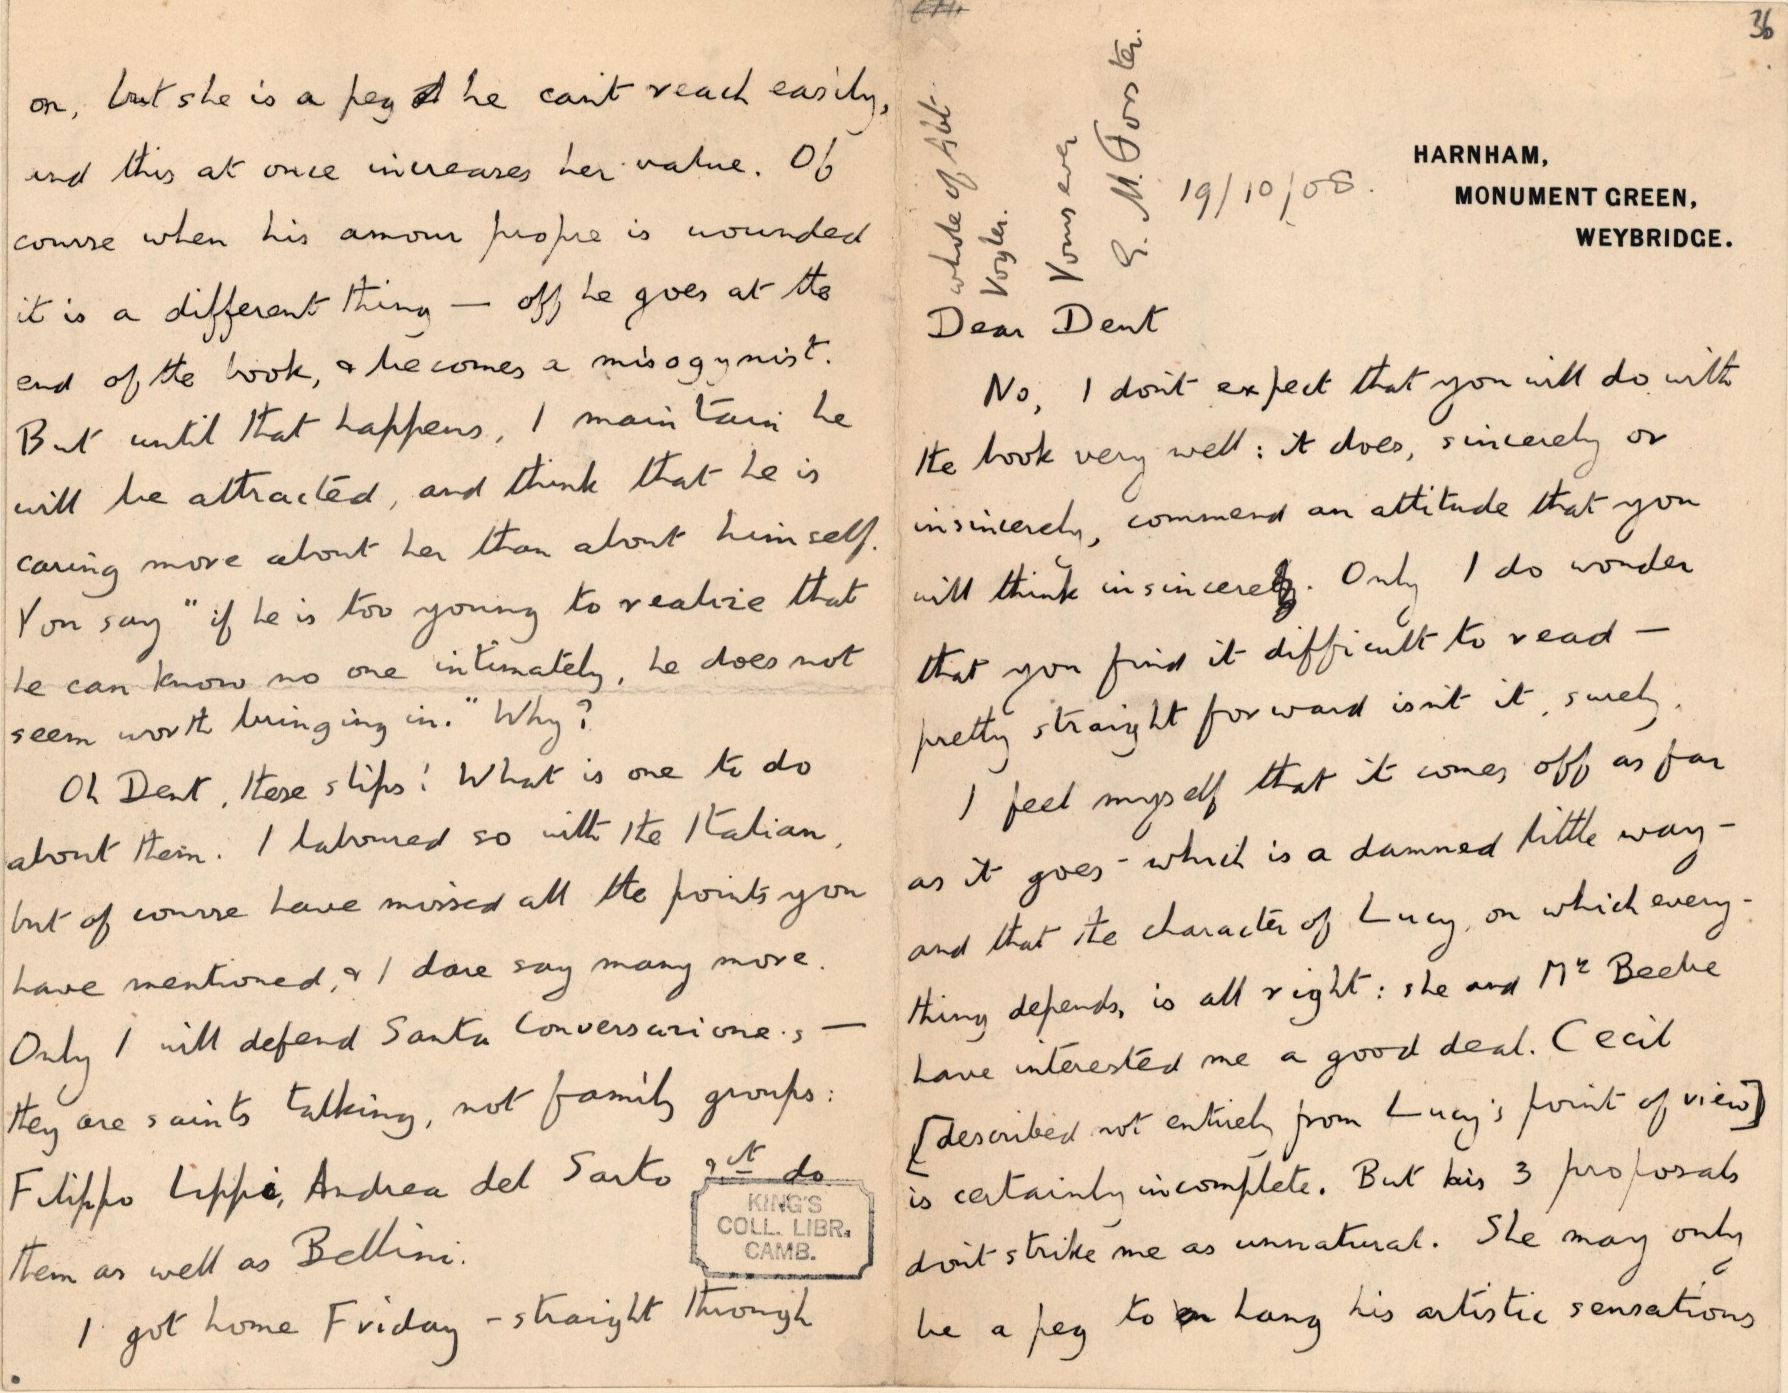 In this 1908 letter to Dent, Forster responds to a lost letter of criticism by Dent of A Room with a View, which had just appeared. [EMF/18/151]